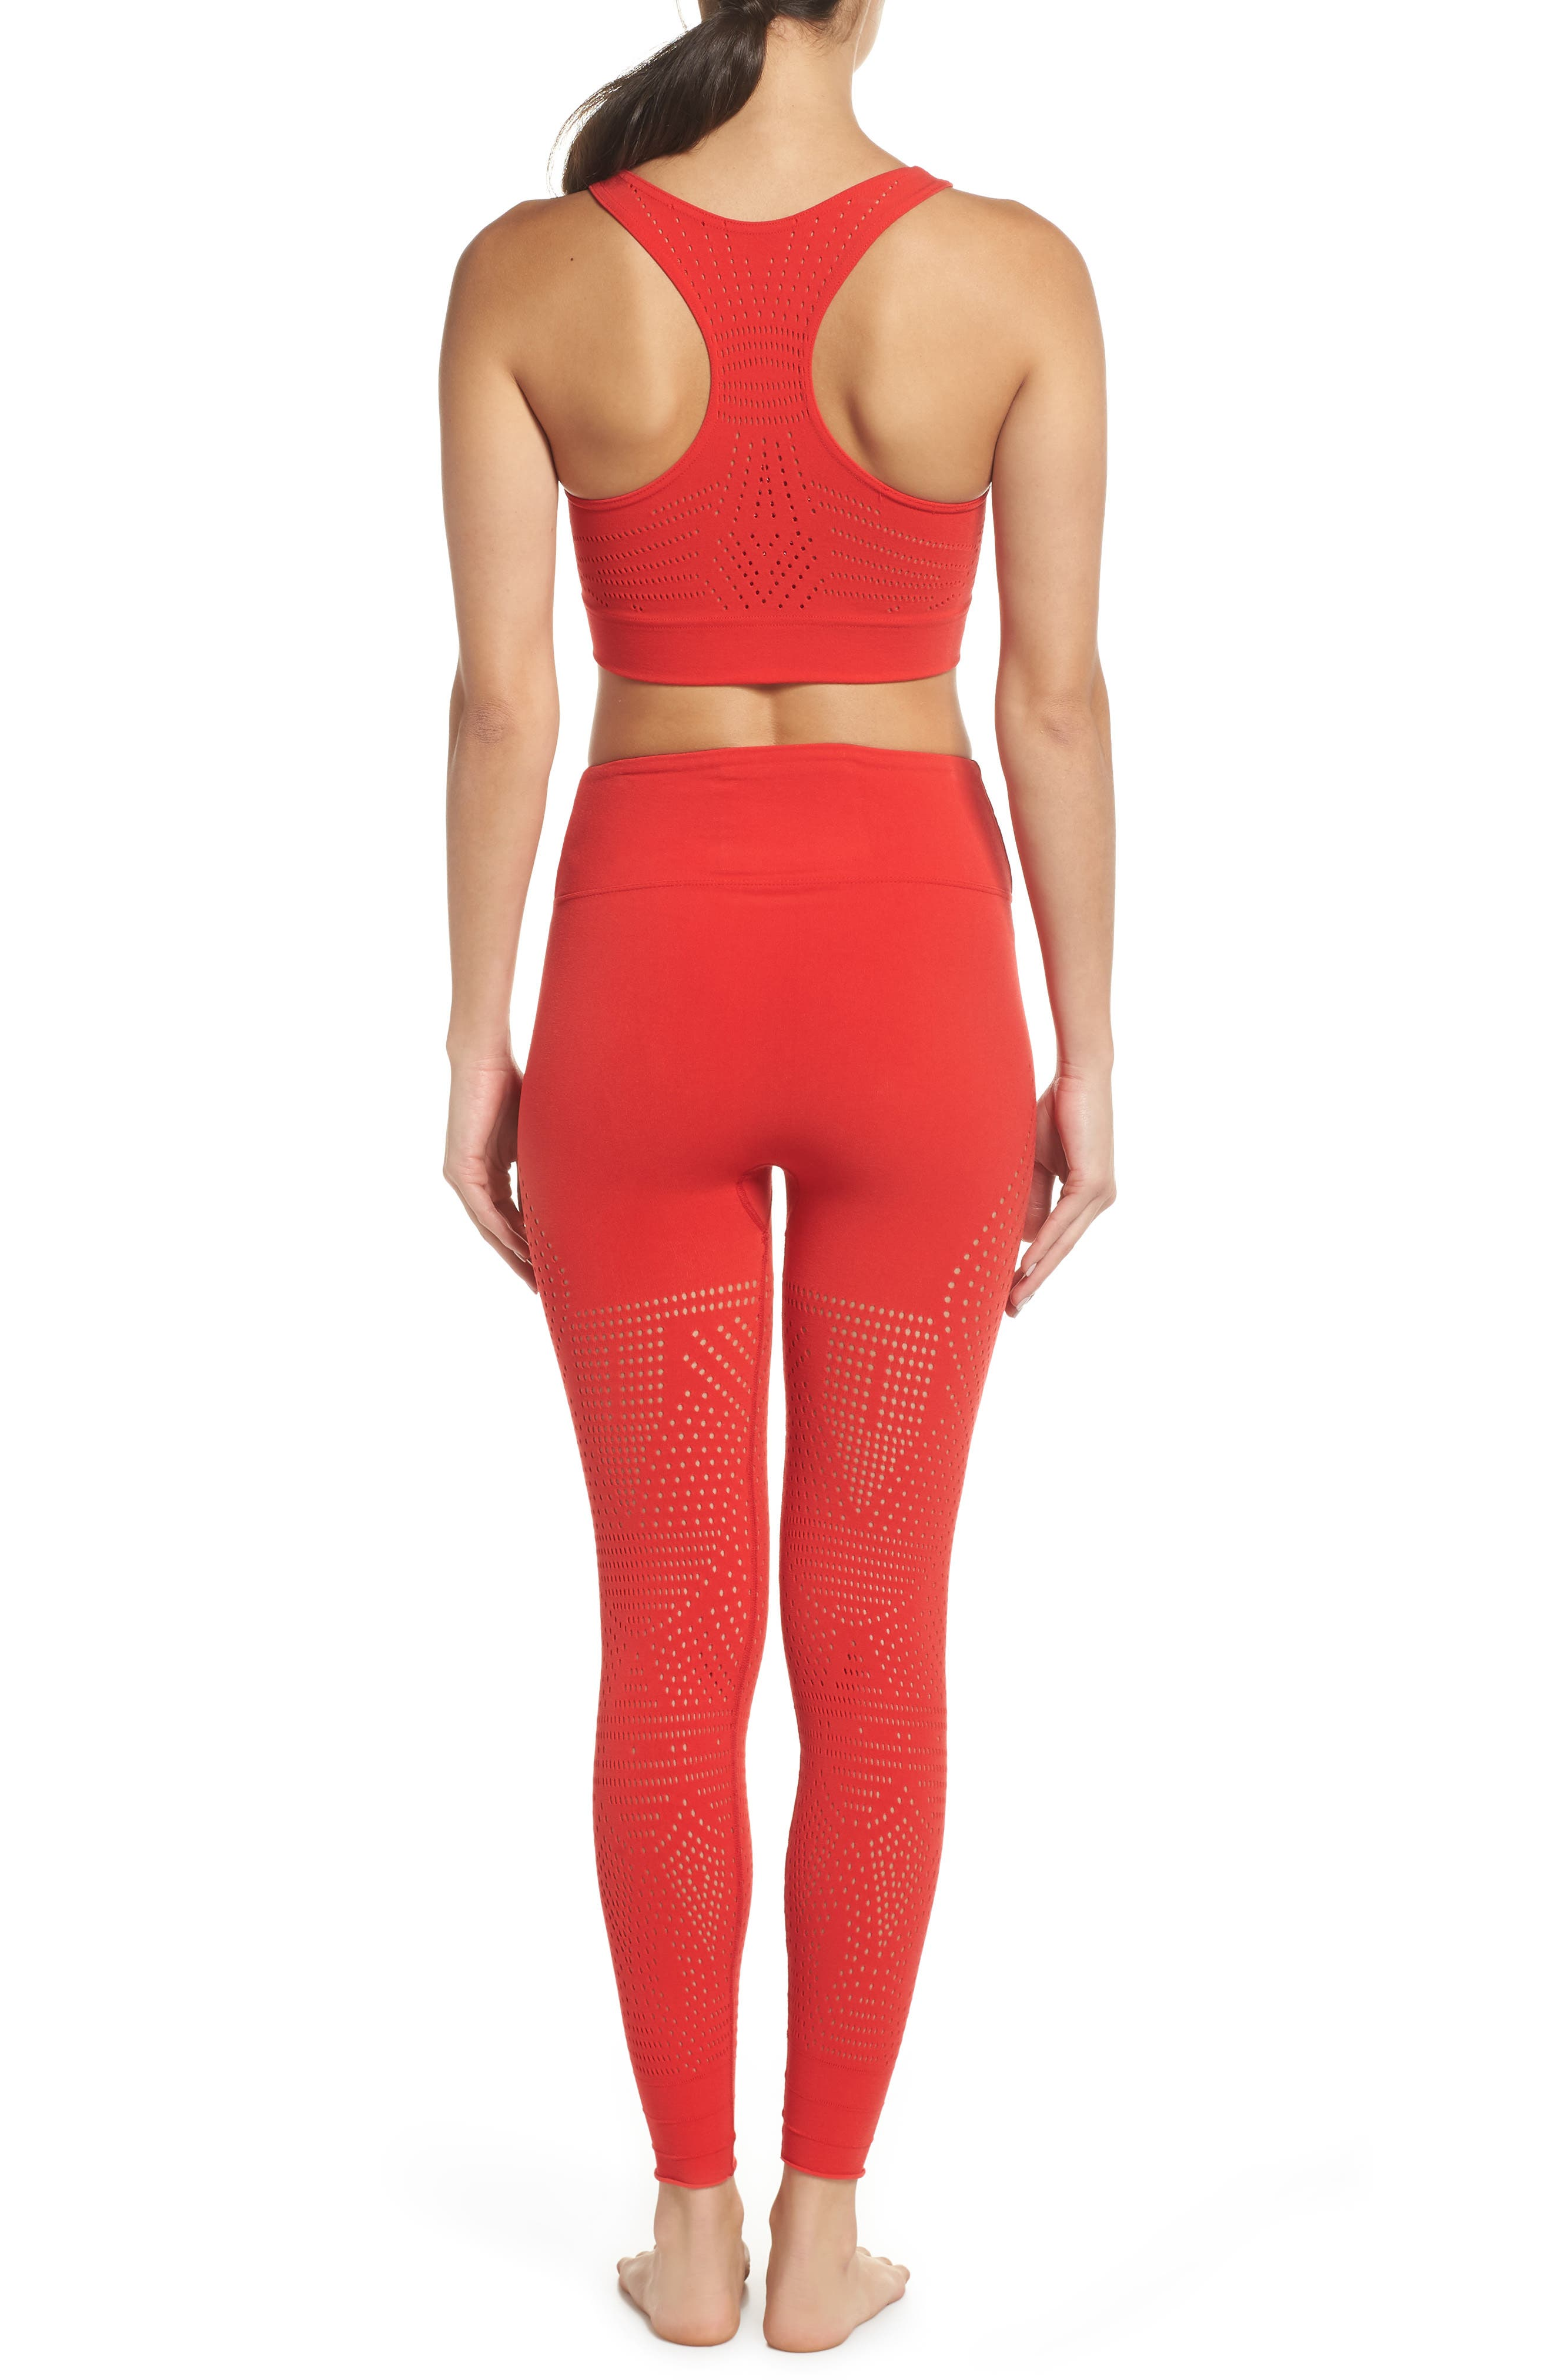 FP Movement Ecology Sports Bra,                             Alternate thumbnail 9, color,                             RED